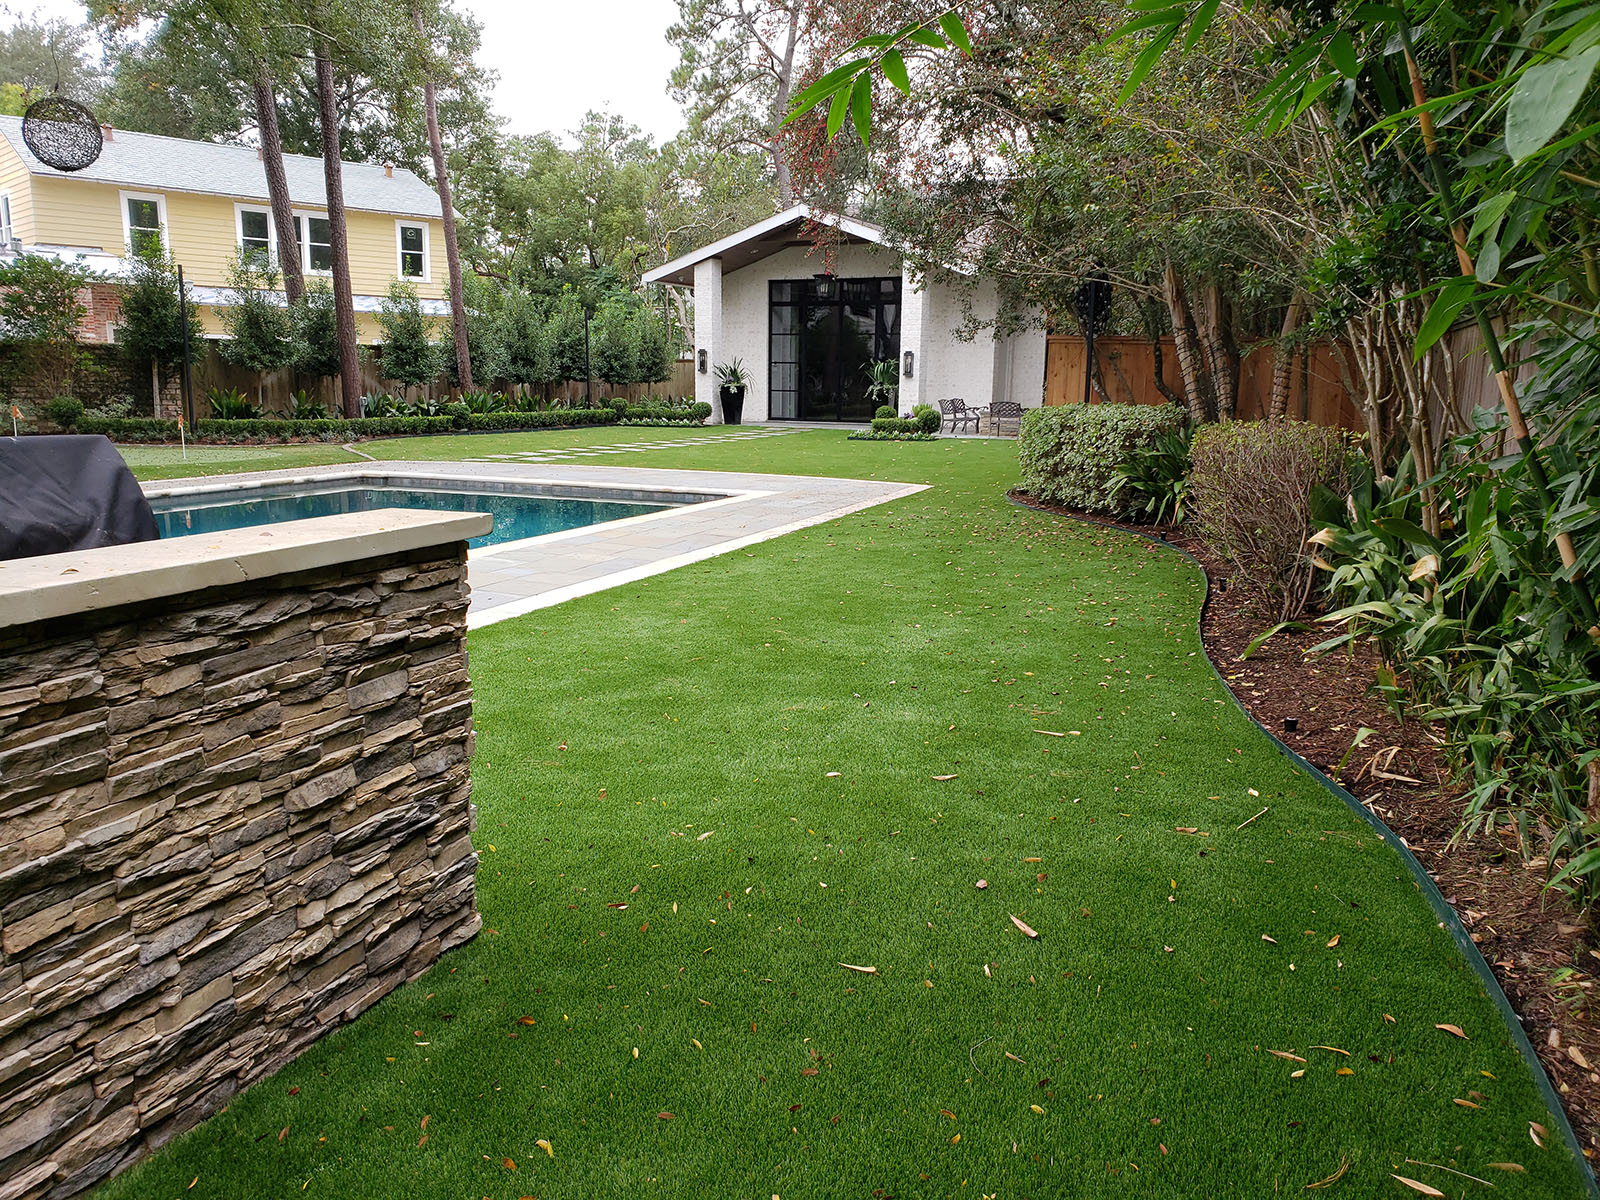 private backyard with synthetic turf lawn